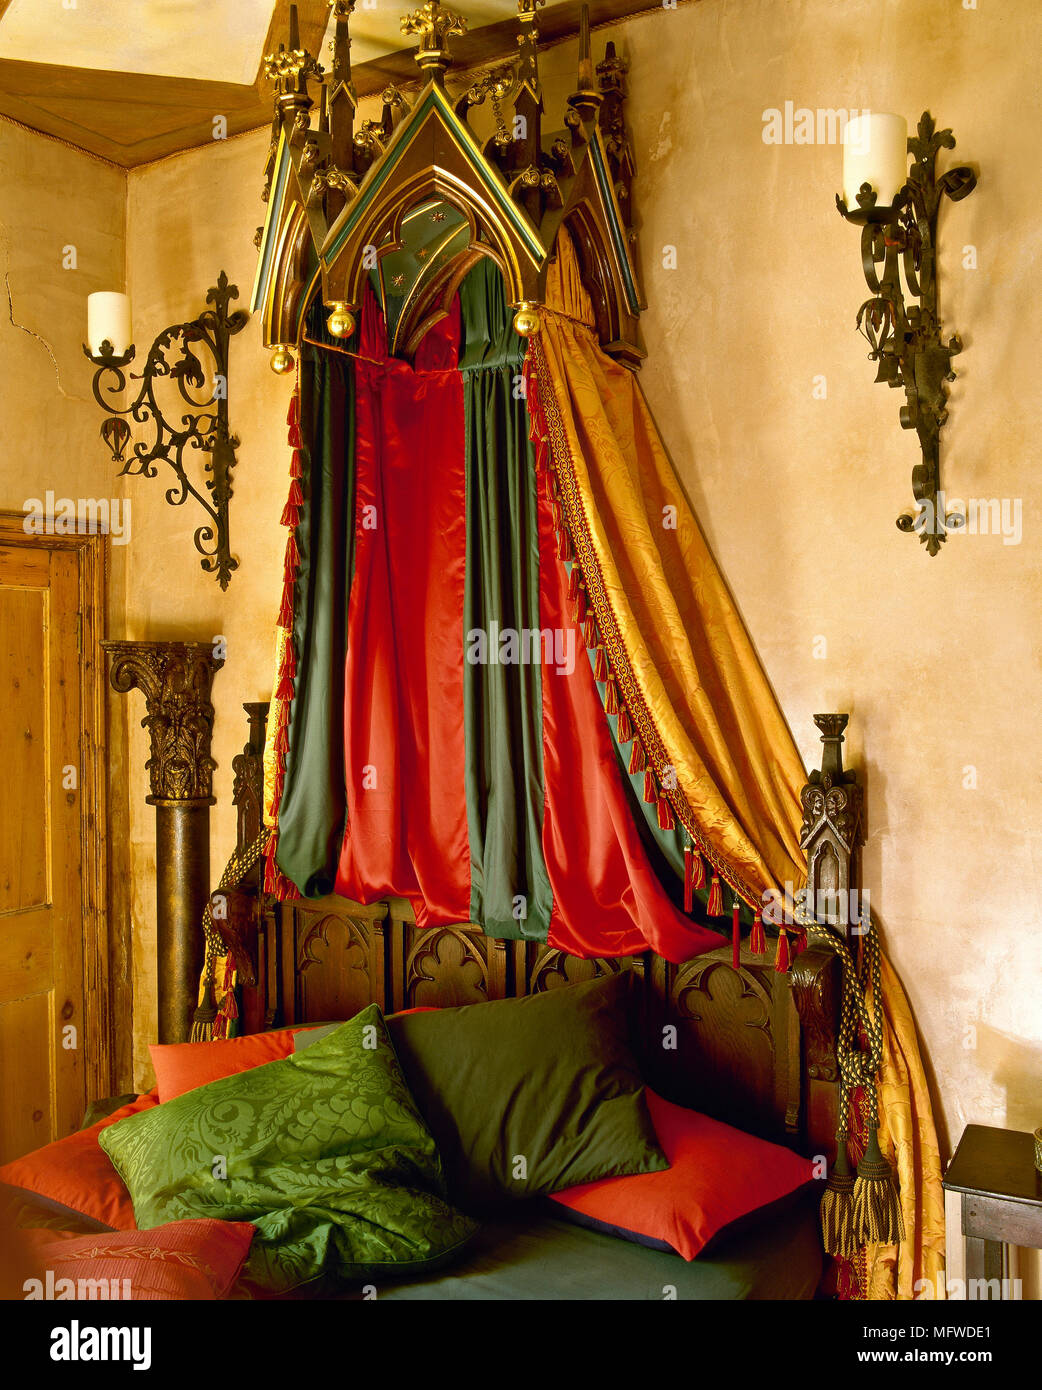 A Gothic Styled Bedroom With Yellow Walls Beamed Ceiling Gold Canopy Red Green Bed Linen Iron Candle Sconces Stock Photo Alamy